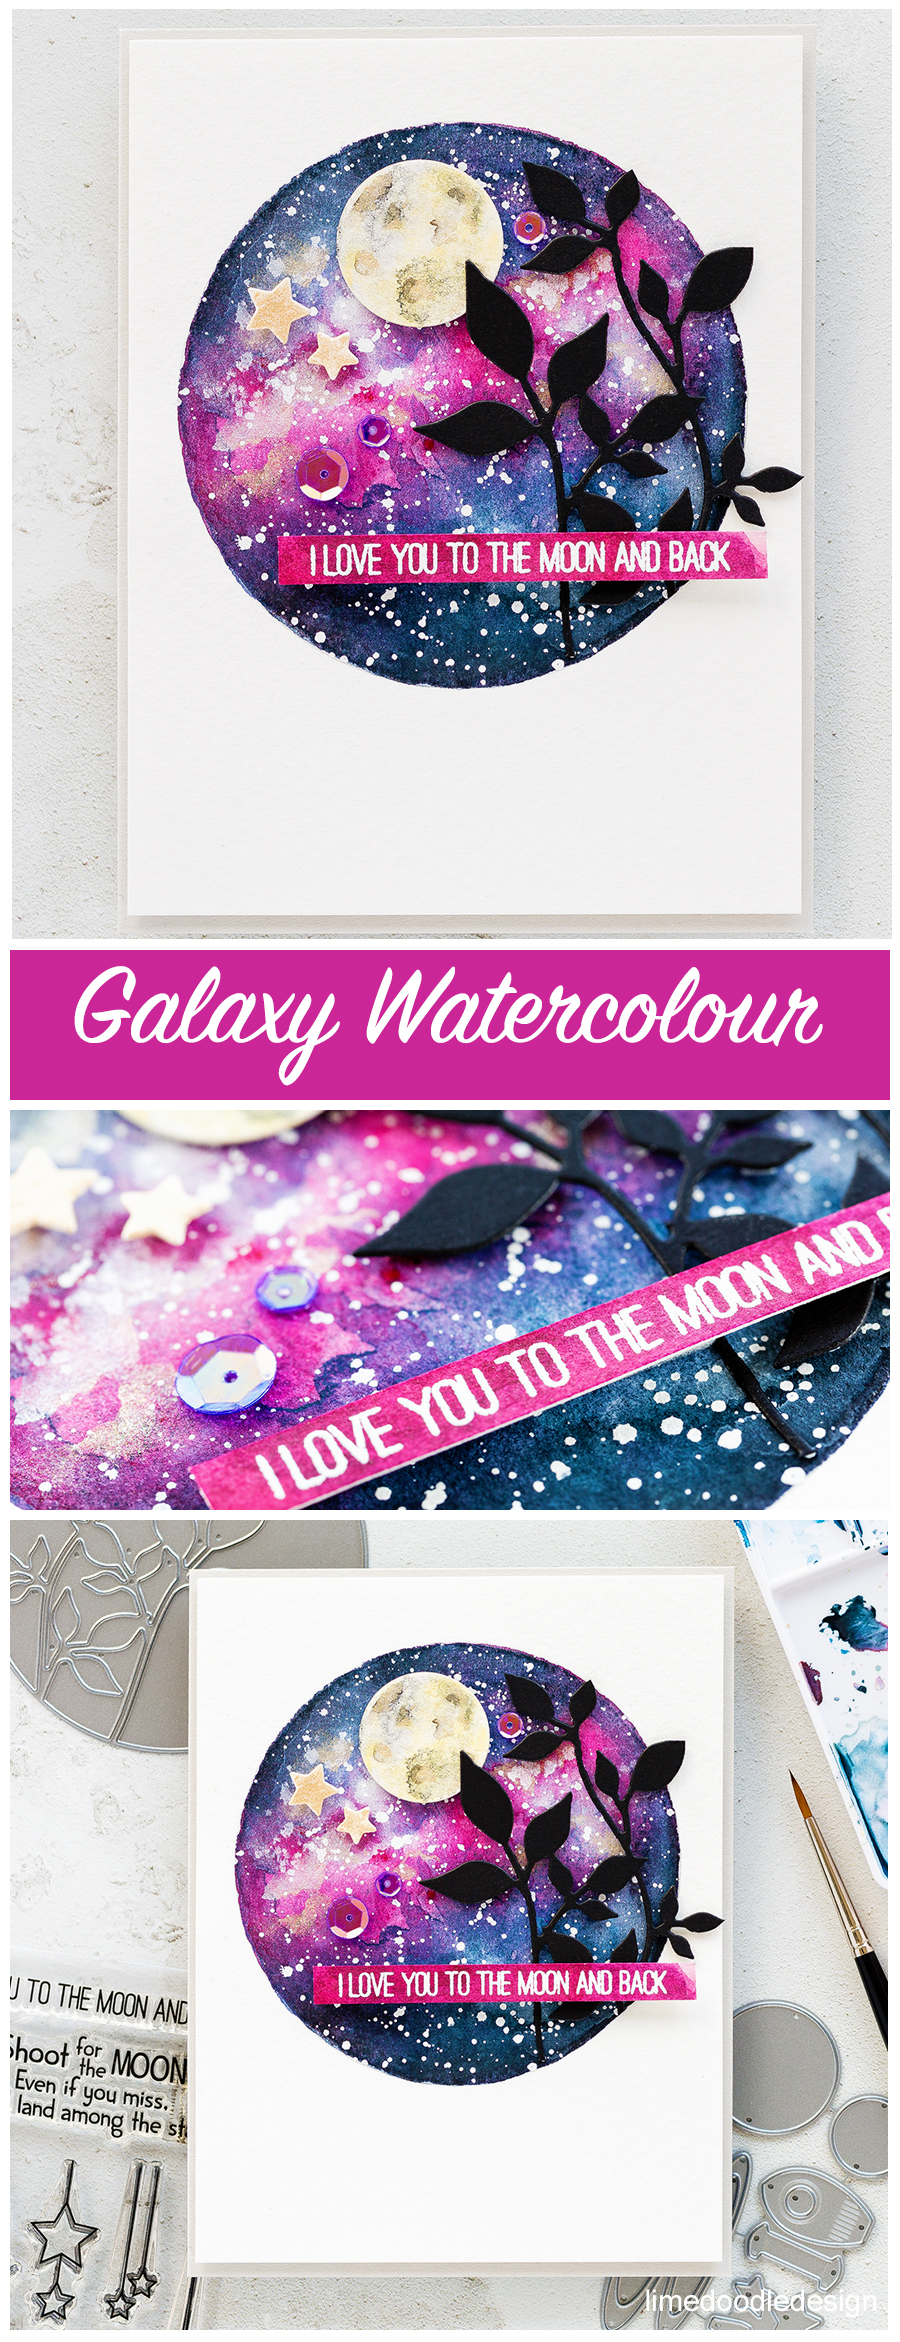 "Galaxy watercolour ""I love you to the moon and back"" handmade card by Debby Hughes. Find out more here: http://limedoodledesign.com/2017/08/galaxy-watercolour/"